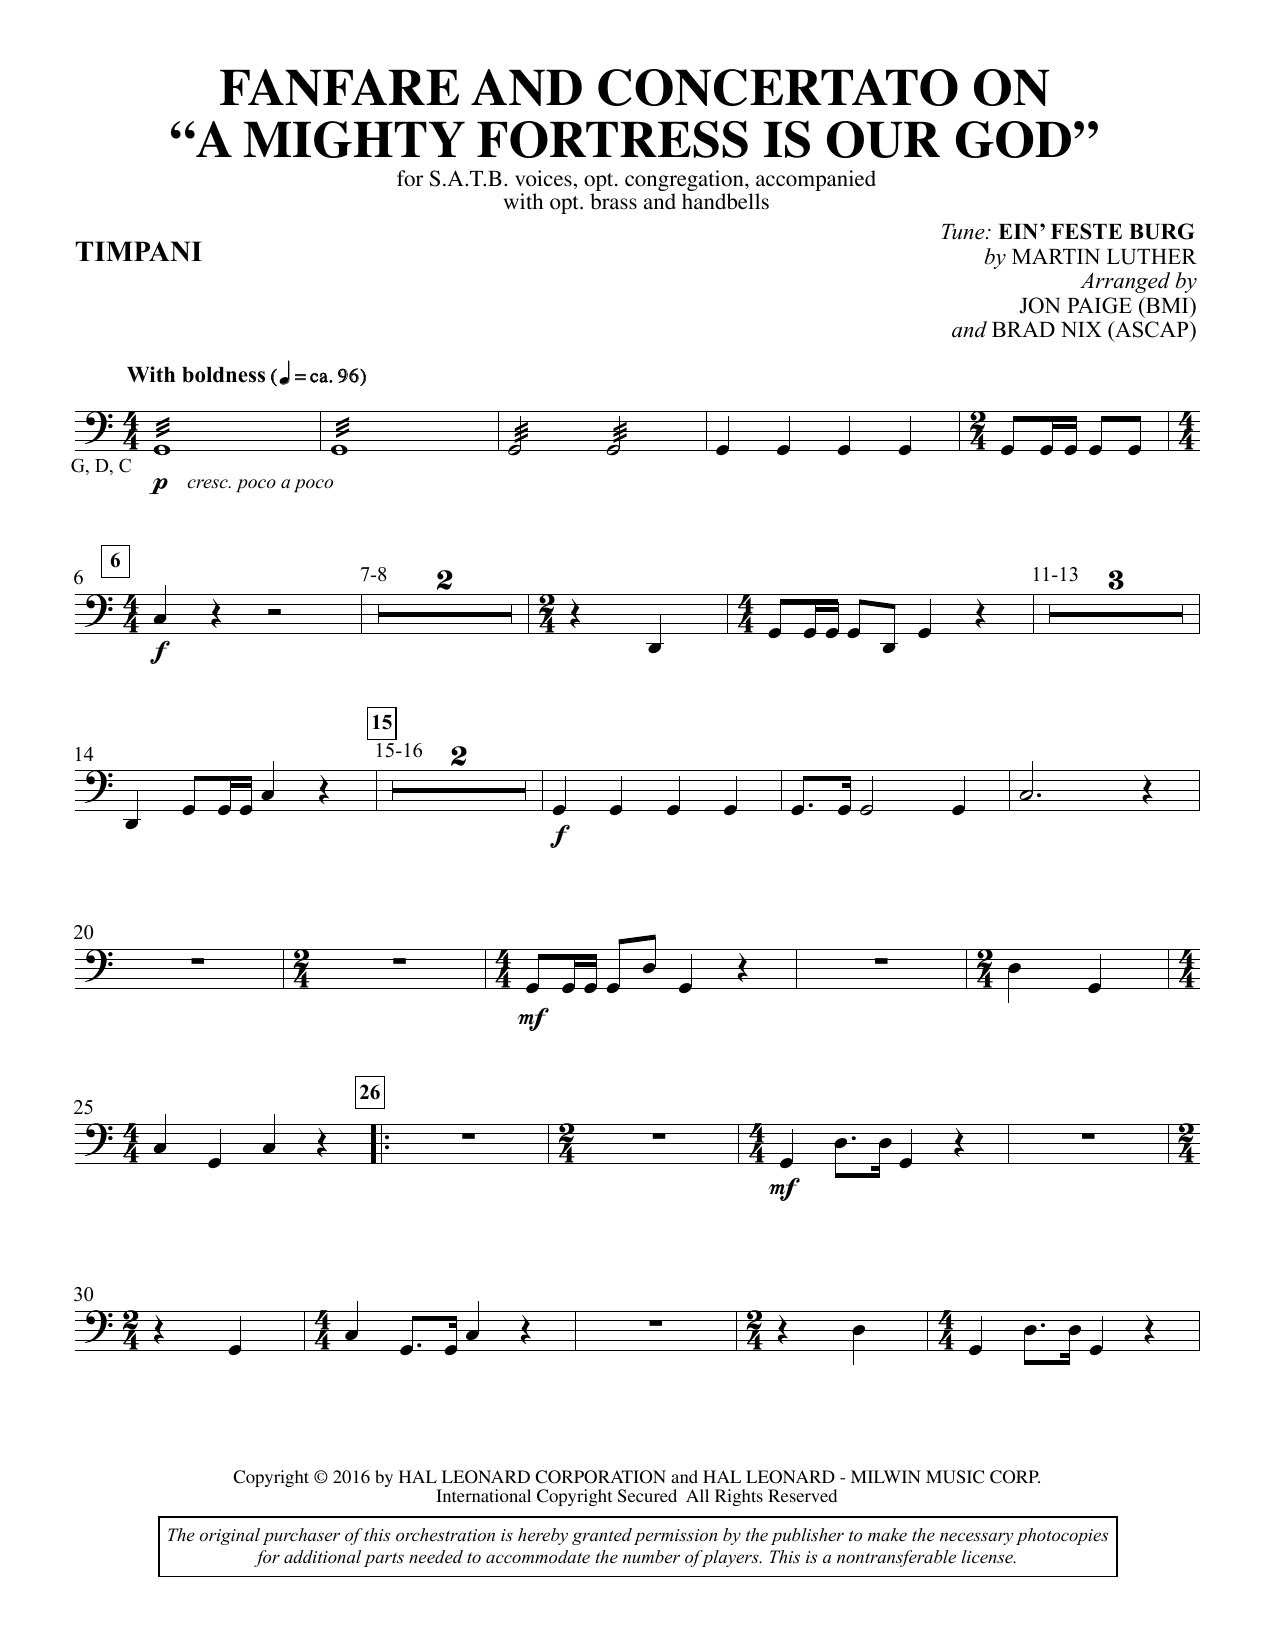 Fanfare and Concertato on A Mighty Fortress Is Our God - Timpani Sheet Music